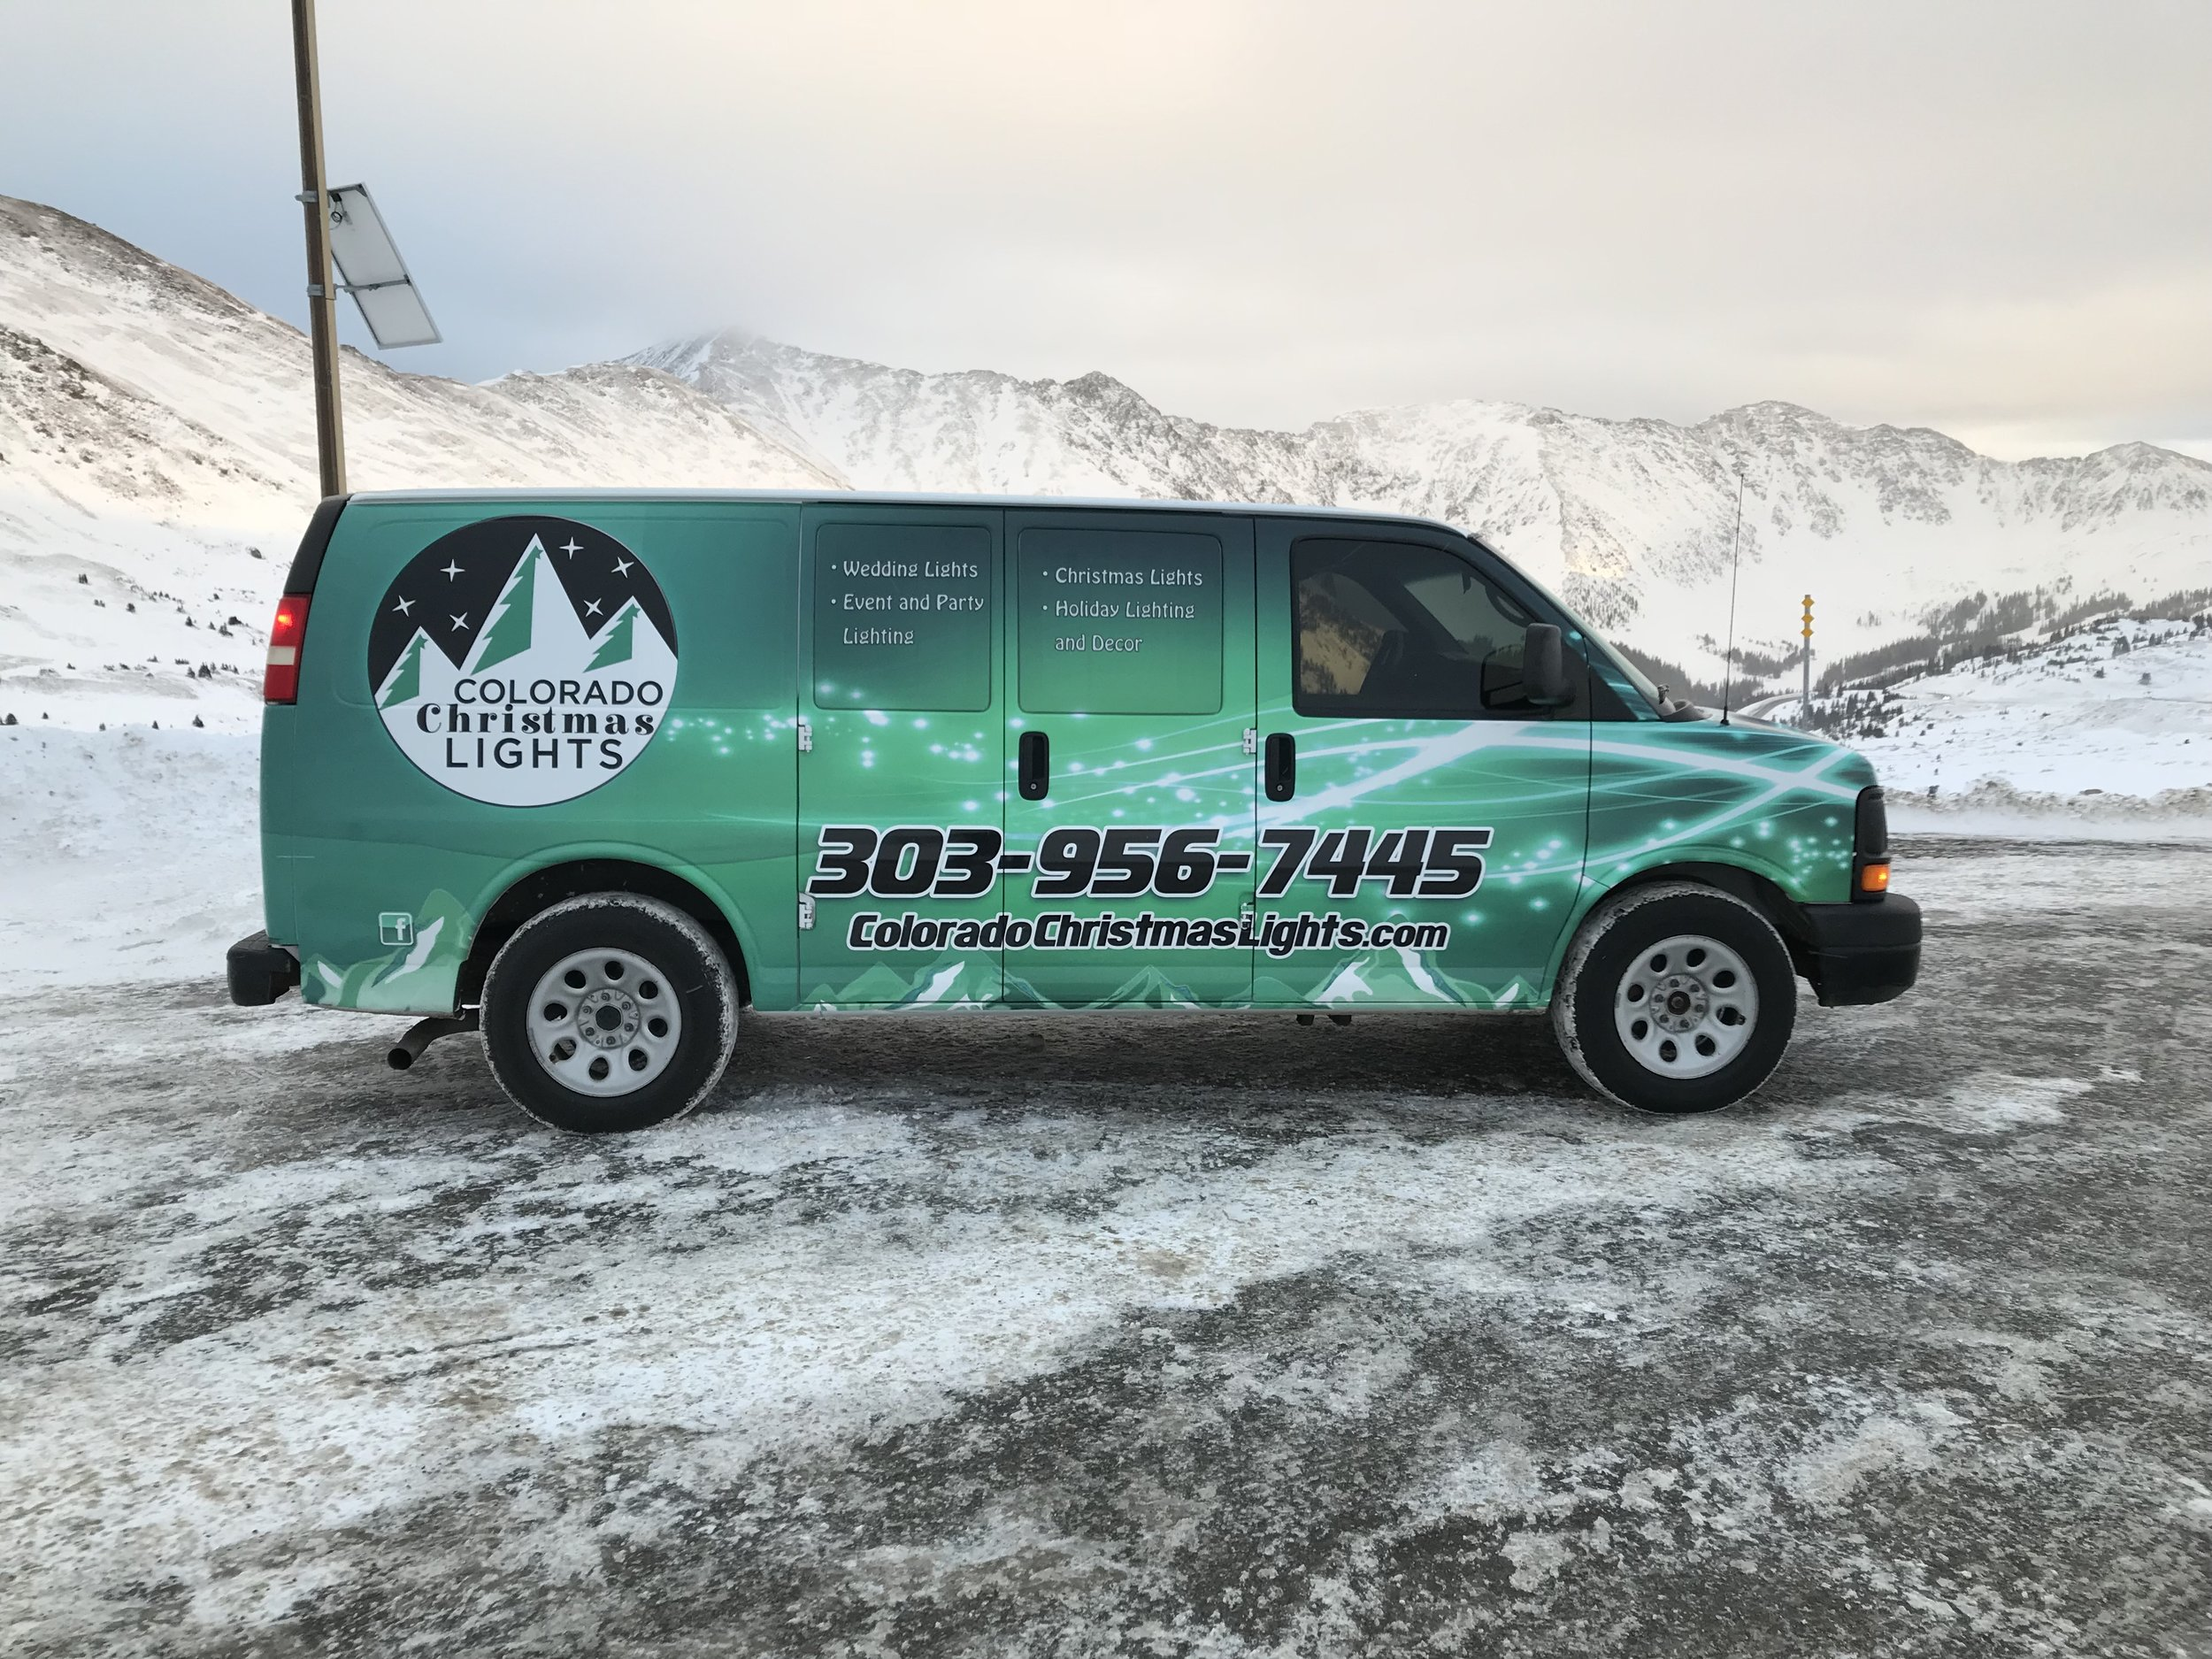 On our way to Summit County over Loveland Pass, Colorado with one of our (2) AWD Mountain Division Vans. We serve the mountain communities as well as the front range.